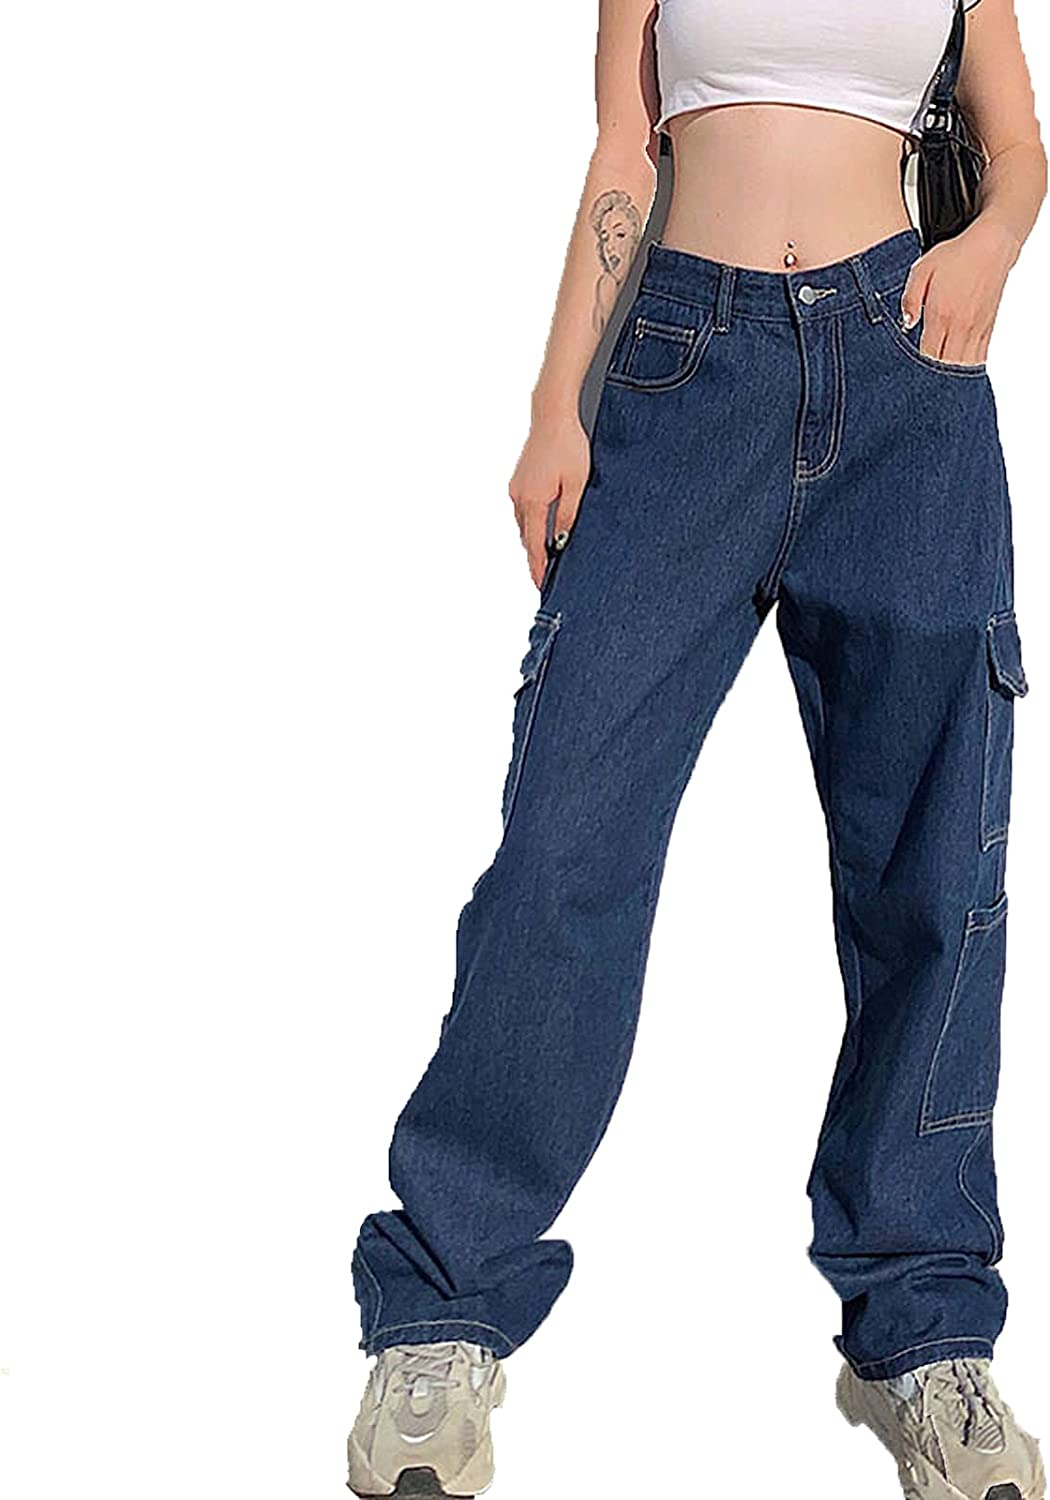 swimstore Fashion Loose Jeans Casual Work Je Hop Hip NEW before selling ☆ Sale SALE% OFF Women Pants